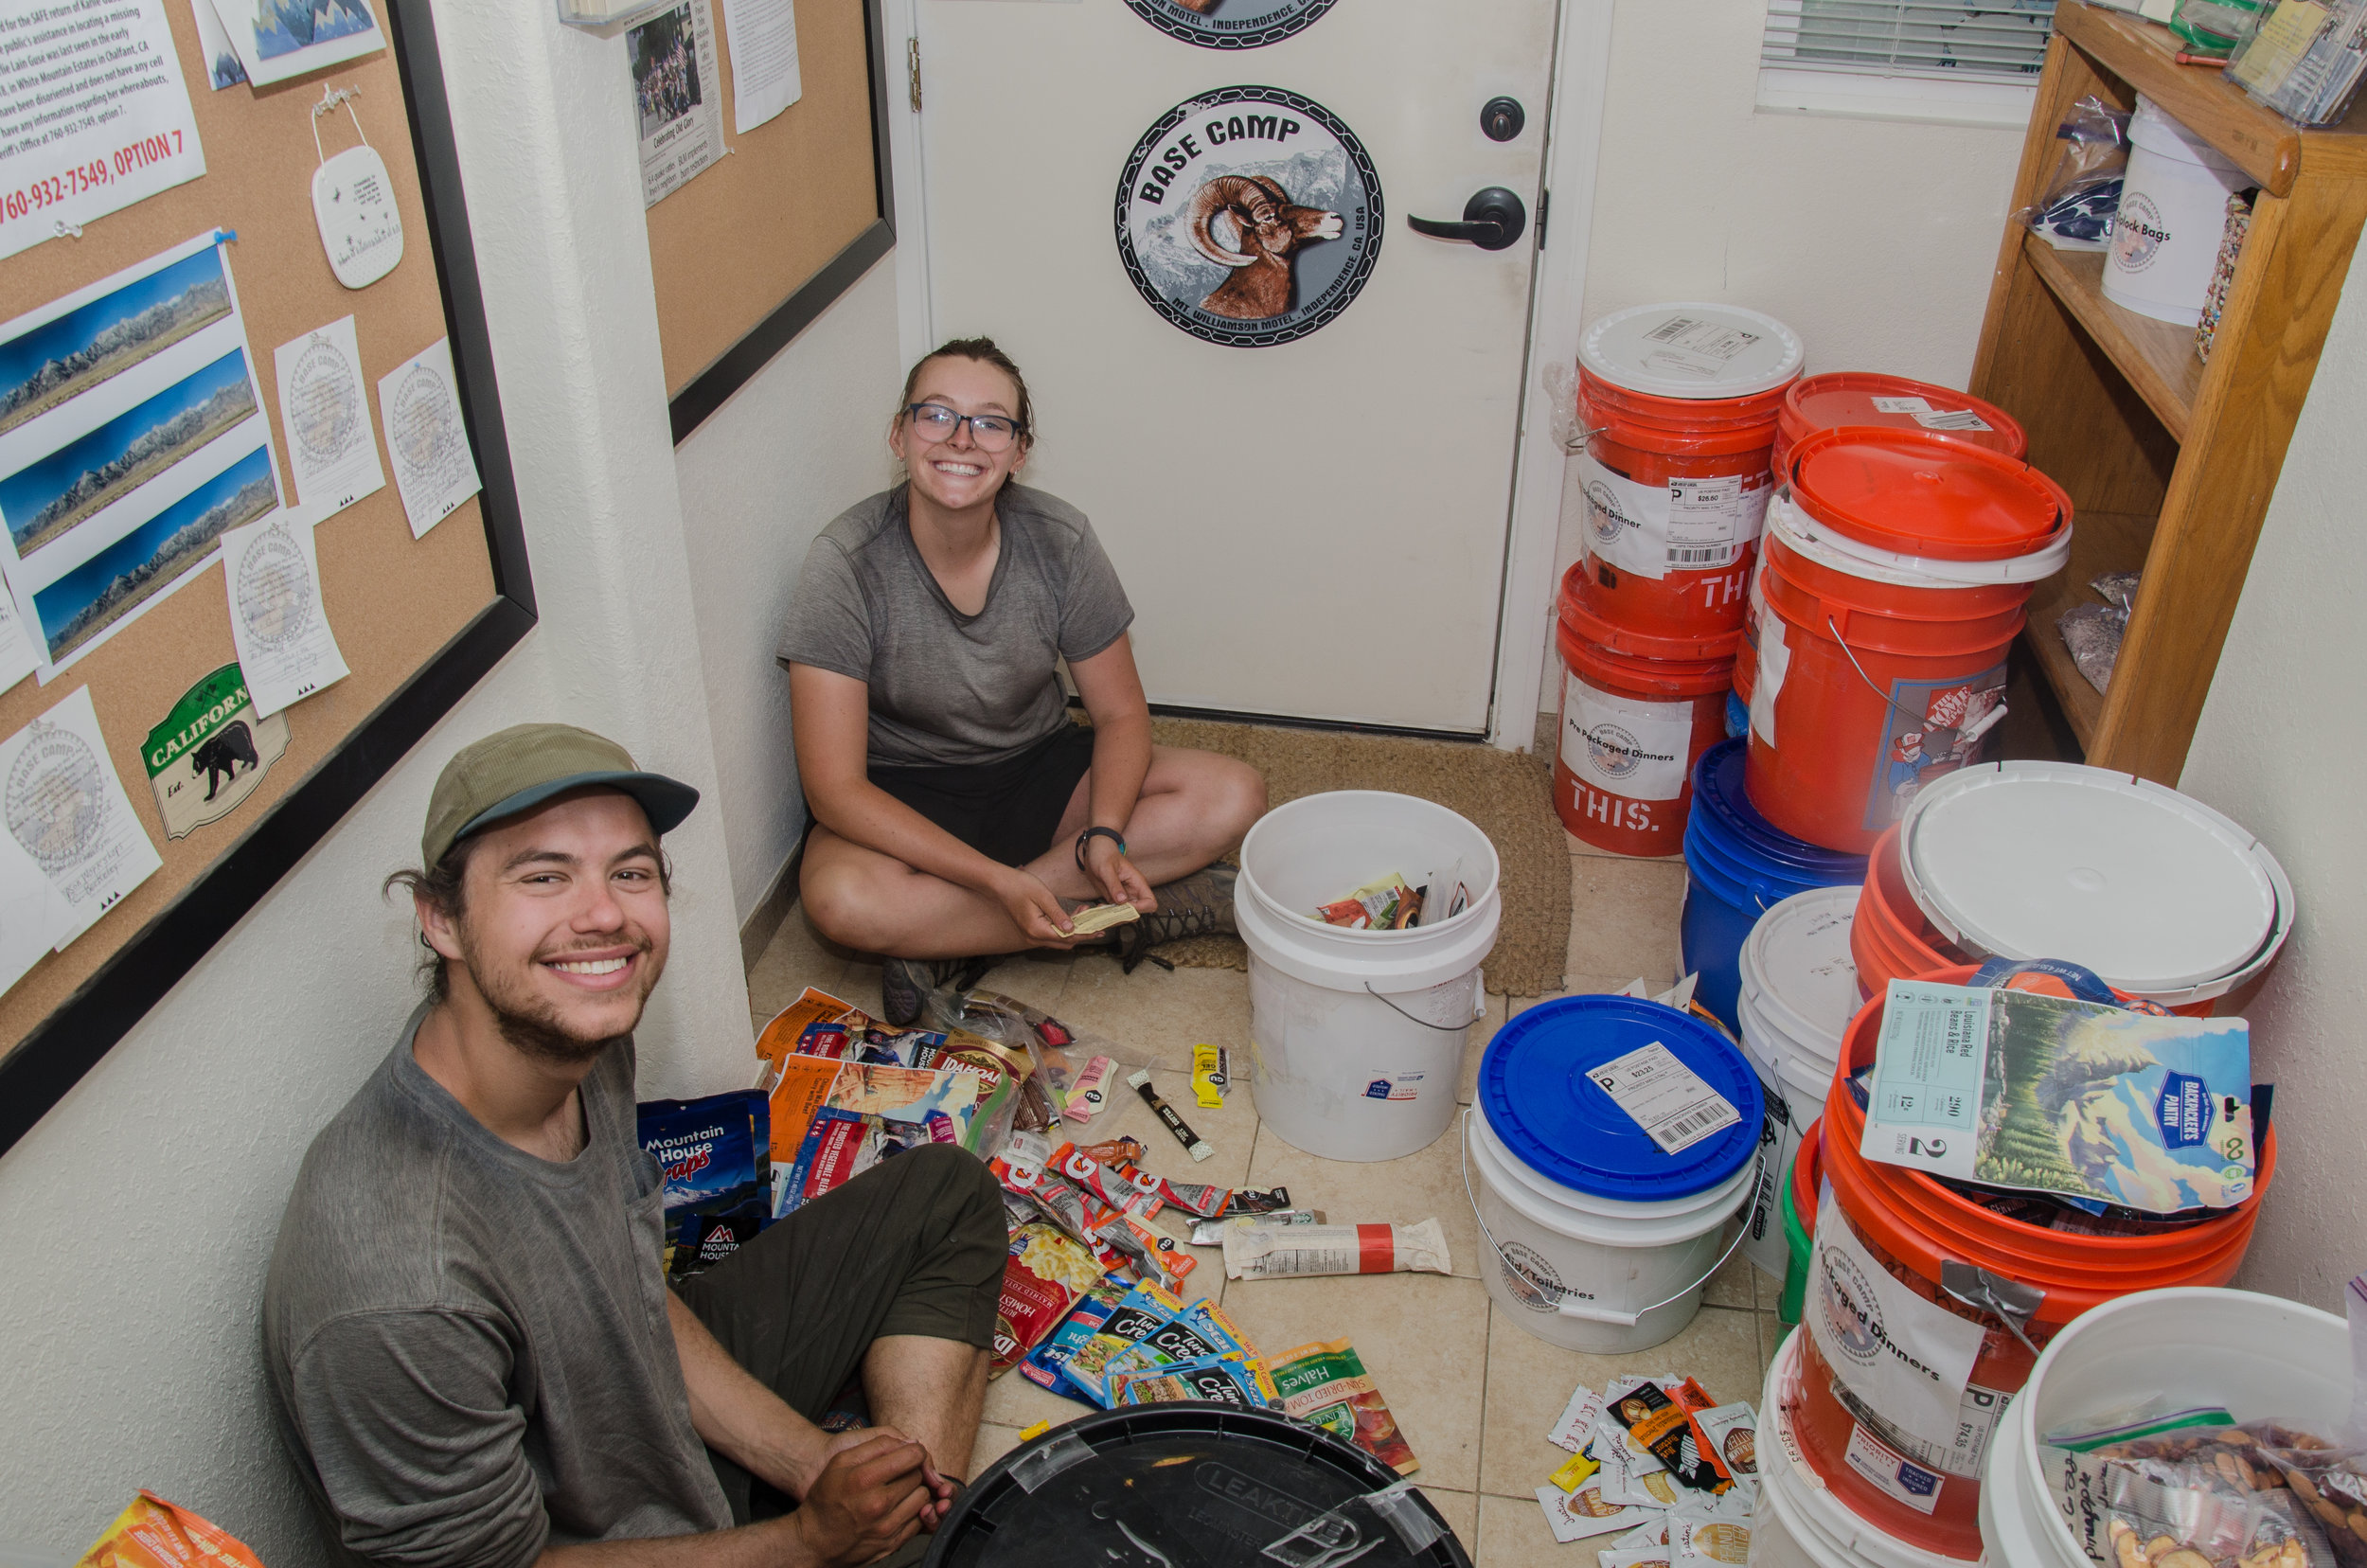 JMT Hikers Andrew and Grace raid our free hiker bins